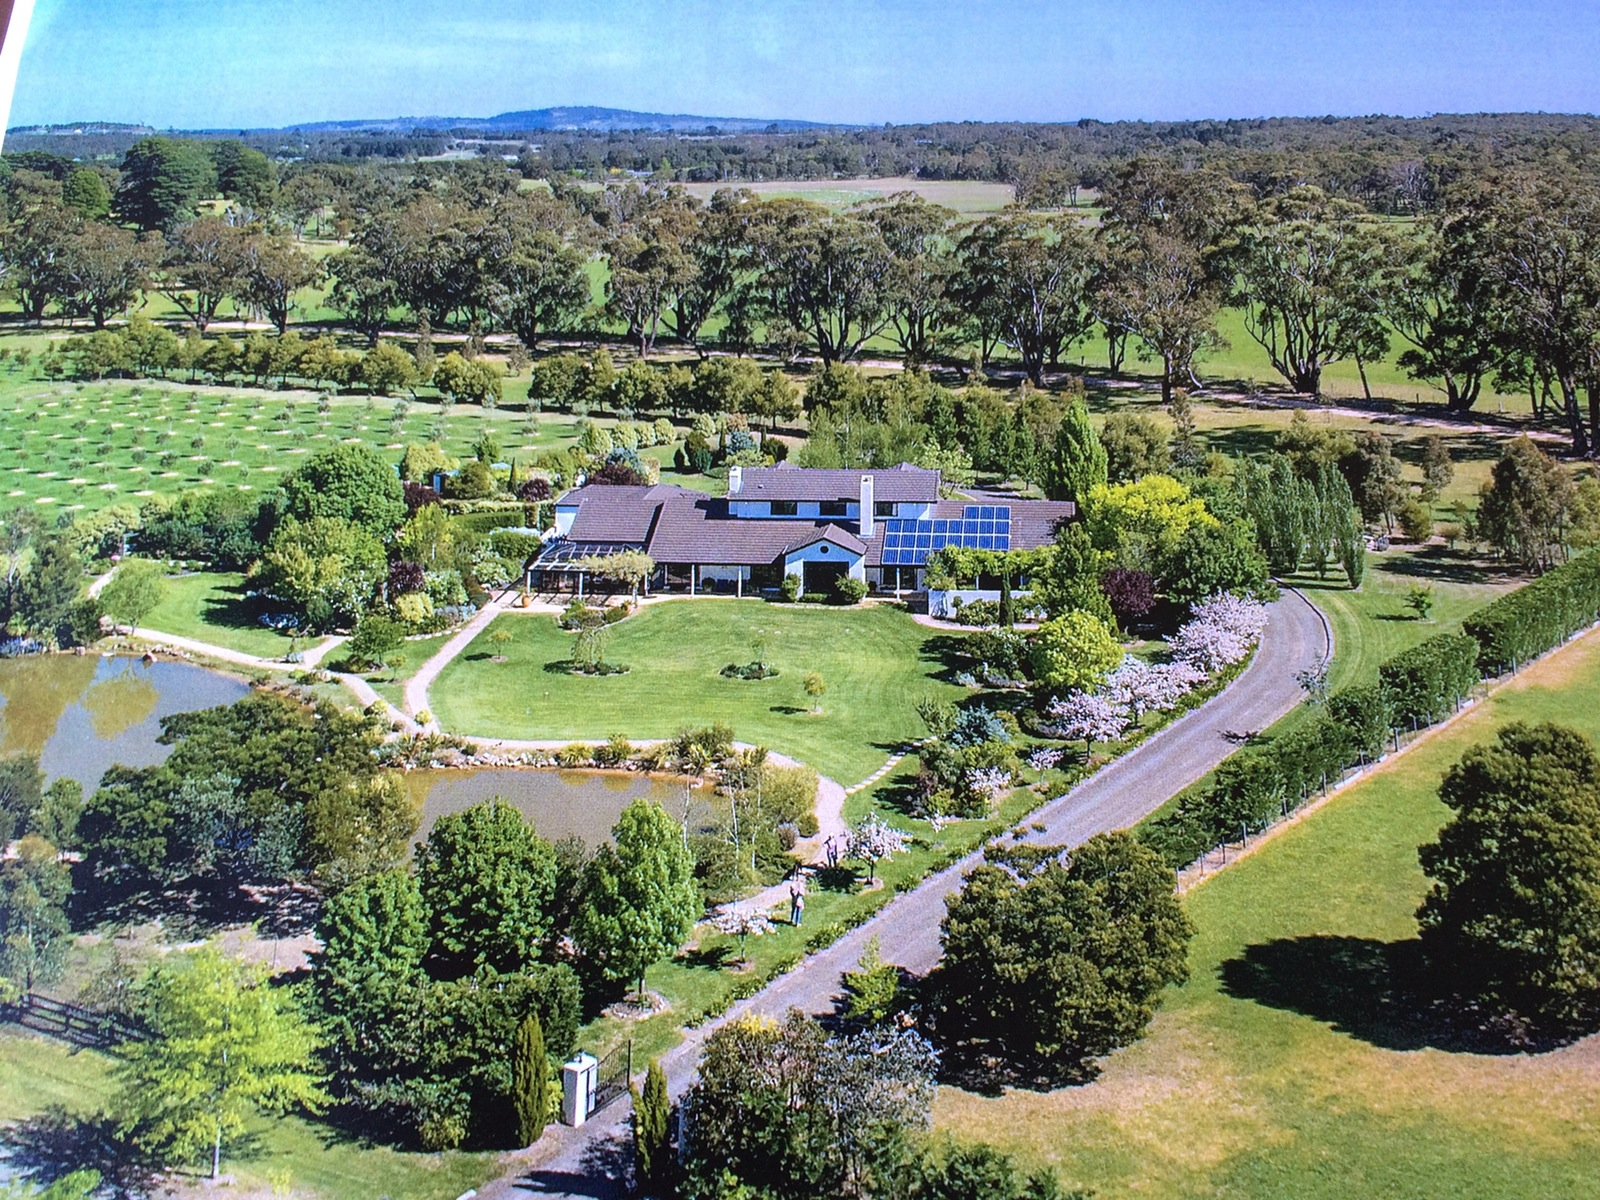 aerial view of home set in expansive garden with lake and lawns